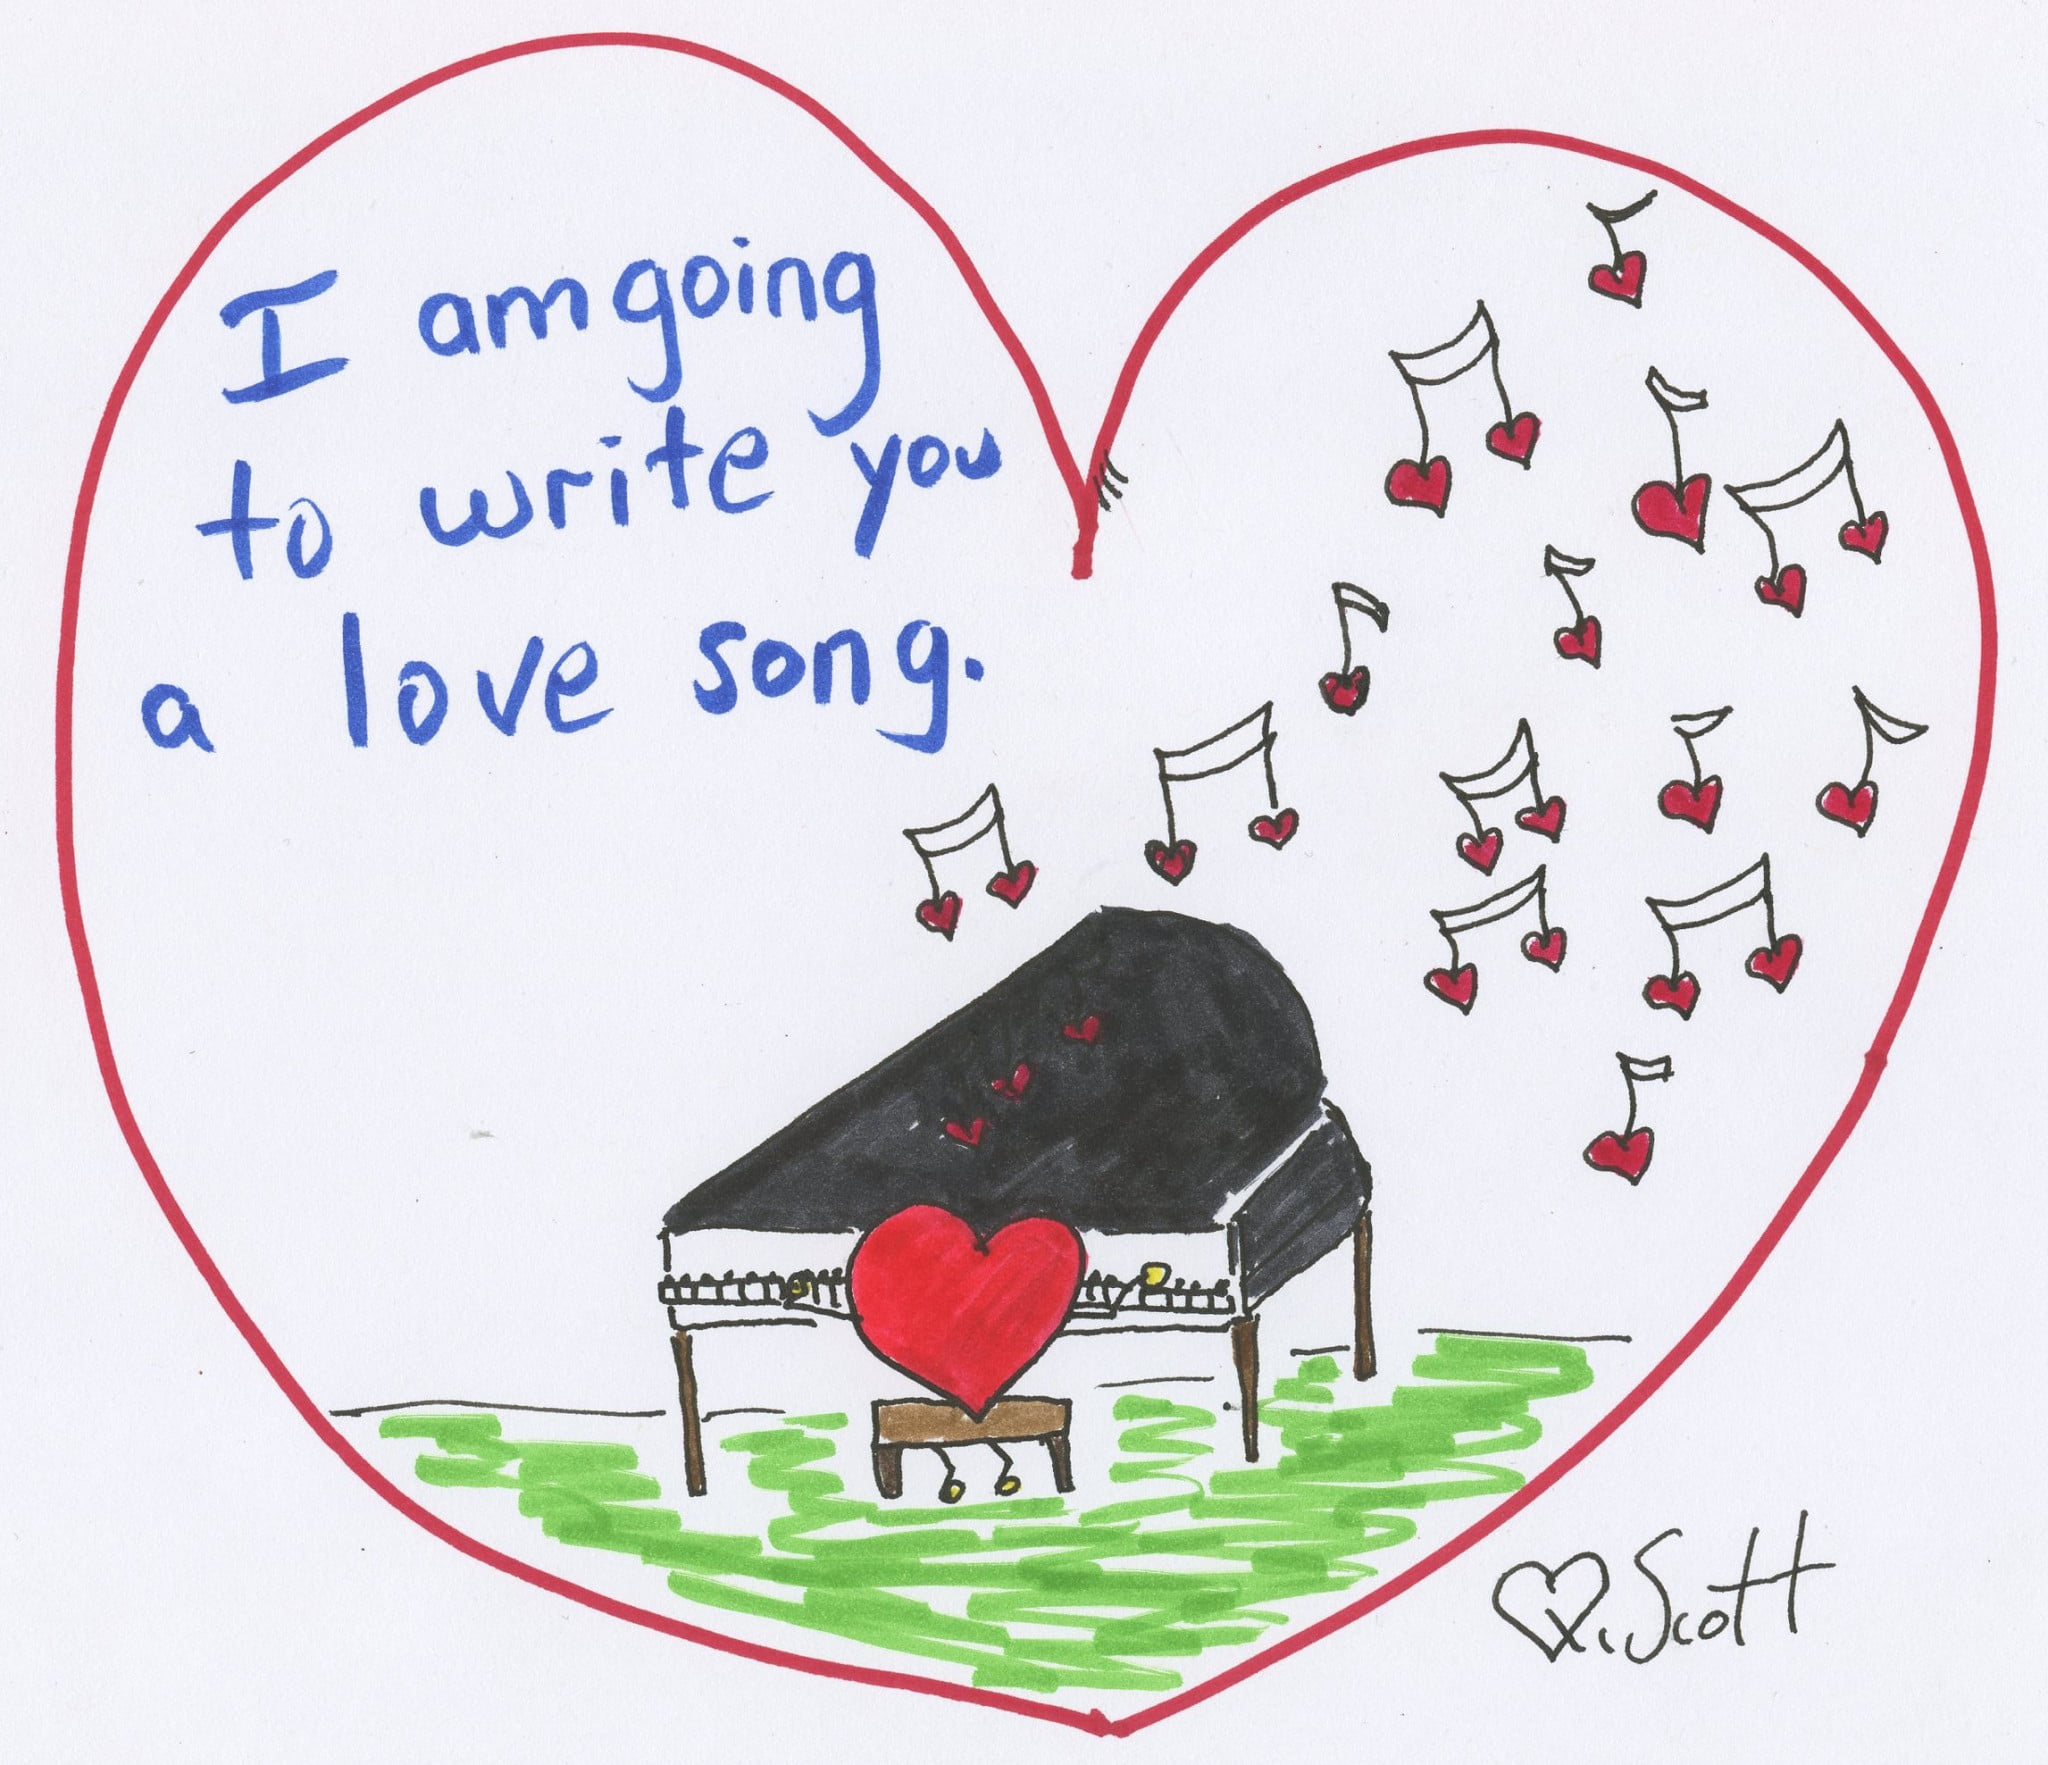 I am going to write you a love song.